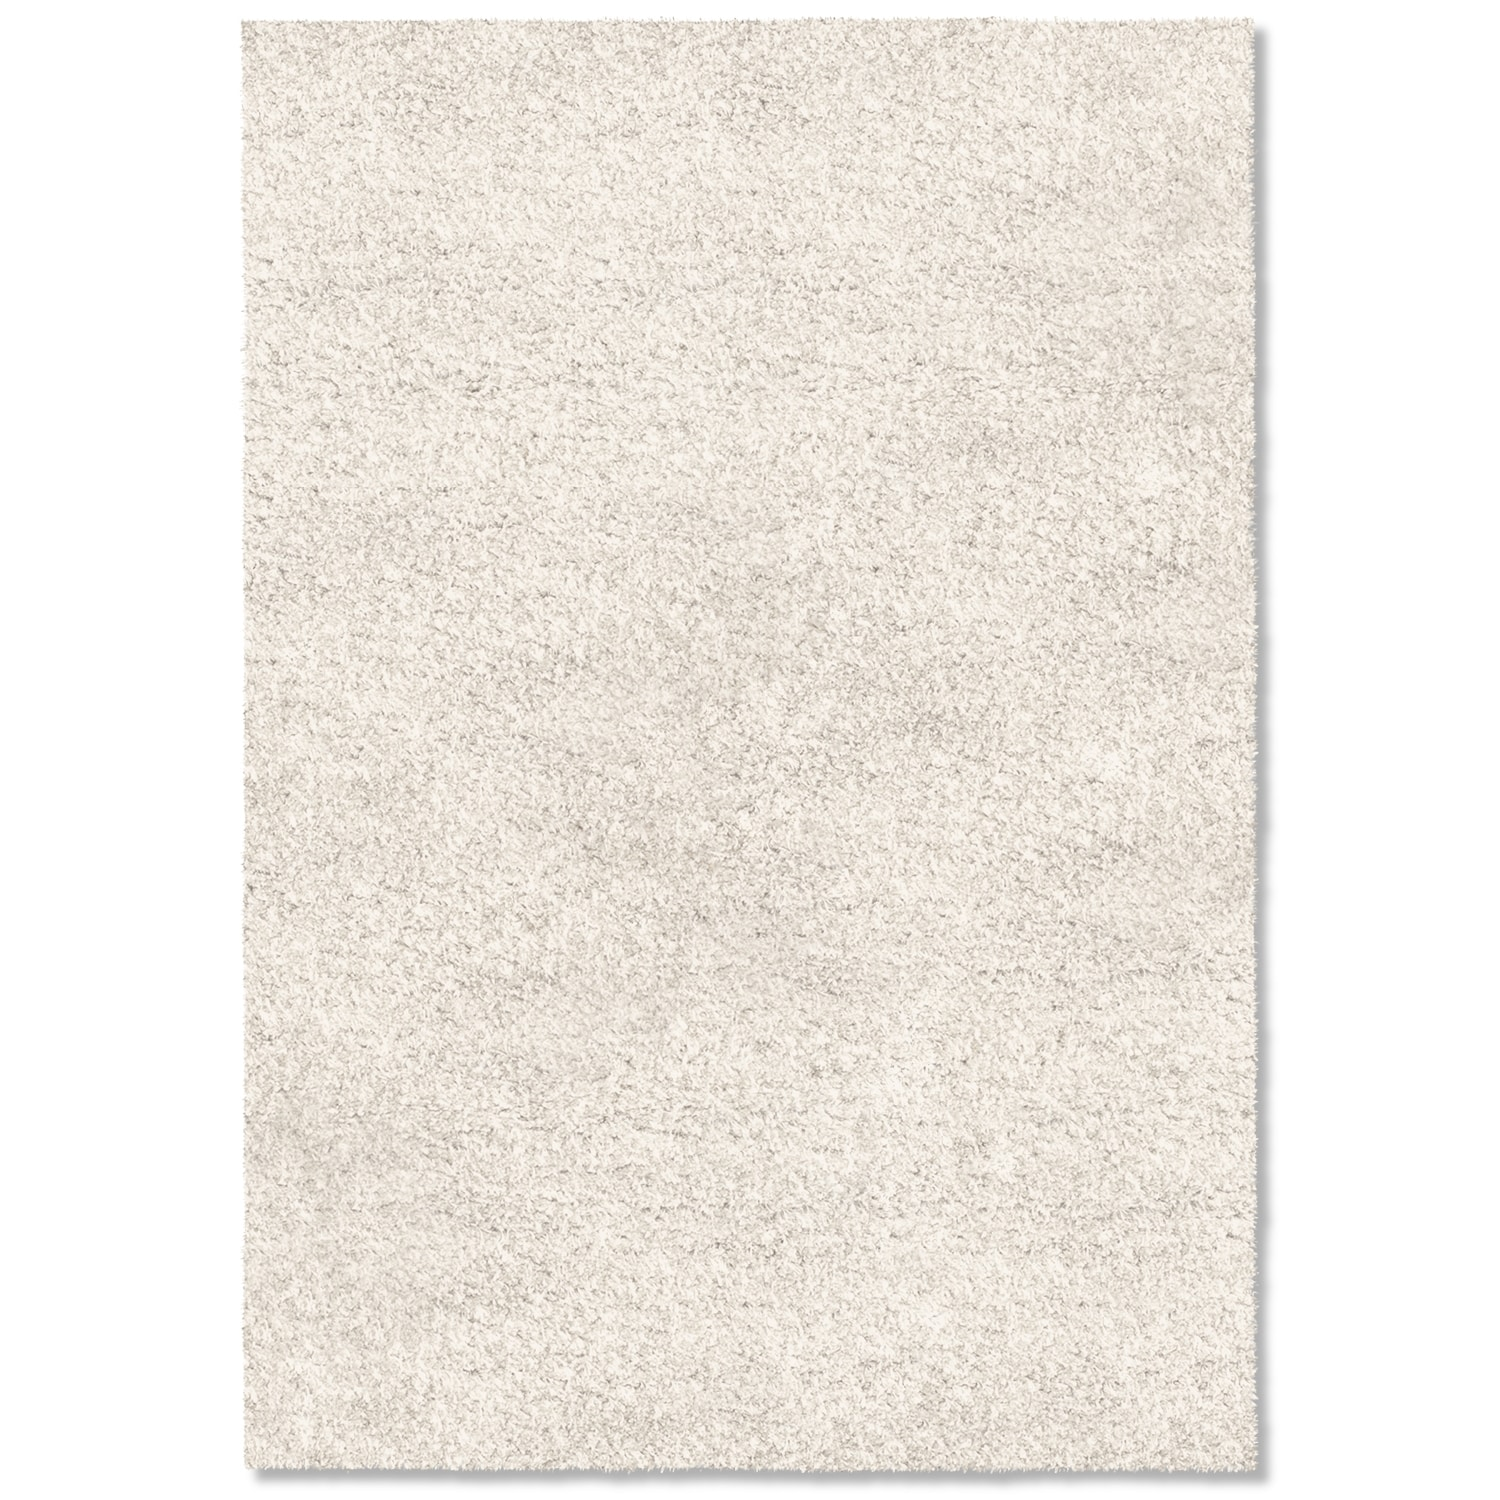 Rugs - Comfort White Shag Area Rug (8' x 10')